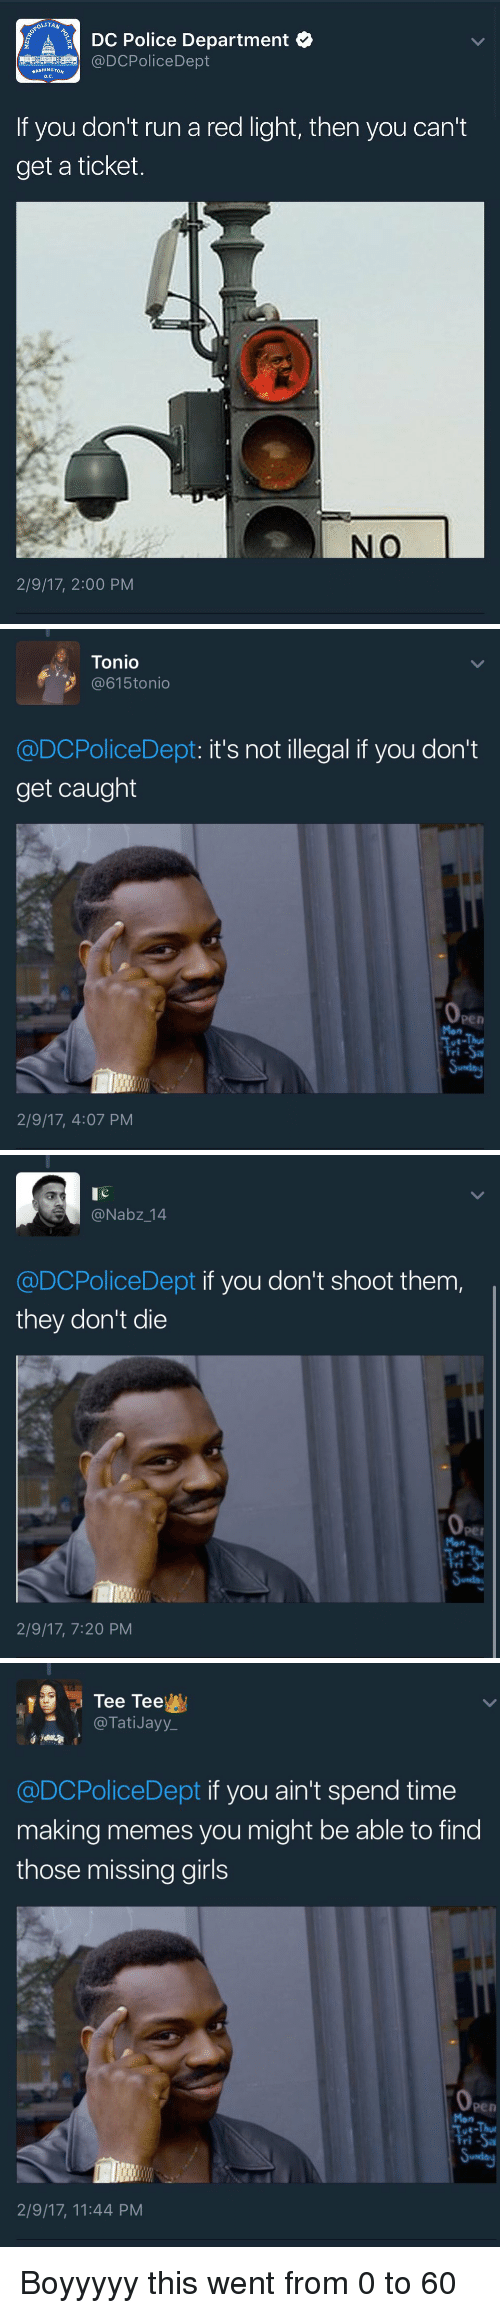 Making Meme: OLITAN  AY DC Police Department  @DCPolice Dept  WASHINGTON  D.C  If you don't run a red light, then you can't  get a ticket.  2/9/17, 2:00 PM   Tonio  @615 tonio  @DCPoliceDept: it's not illegal if you don't  get caught  Fri-Sa  2/9/17, 4:07 PM   @Nabz 14  @DCPoliceDept if you don't shoot them,  they don't die  2/9/17, 7:20 PM   Tee Tee  Tati Jayy  @DCPoliceDept if you ain't spend time  making memes you might be able to find  those missing girls  Tue-Thur  Fri -Sa  2/9/17, 11:44 PM Boyyyyy this went from 0 to 60